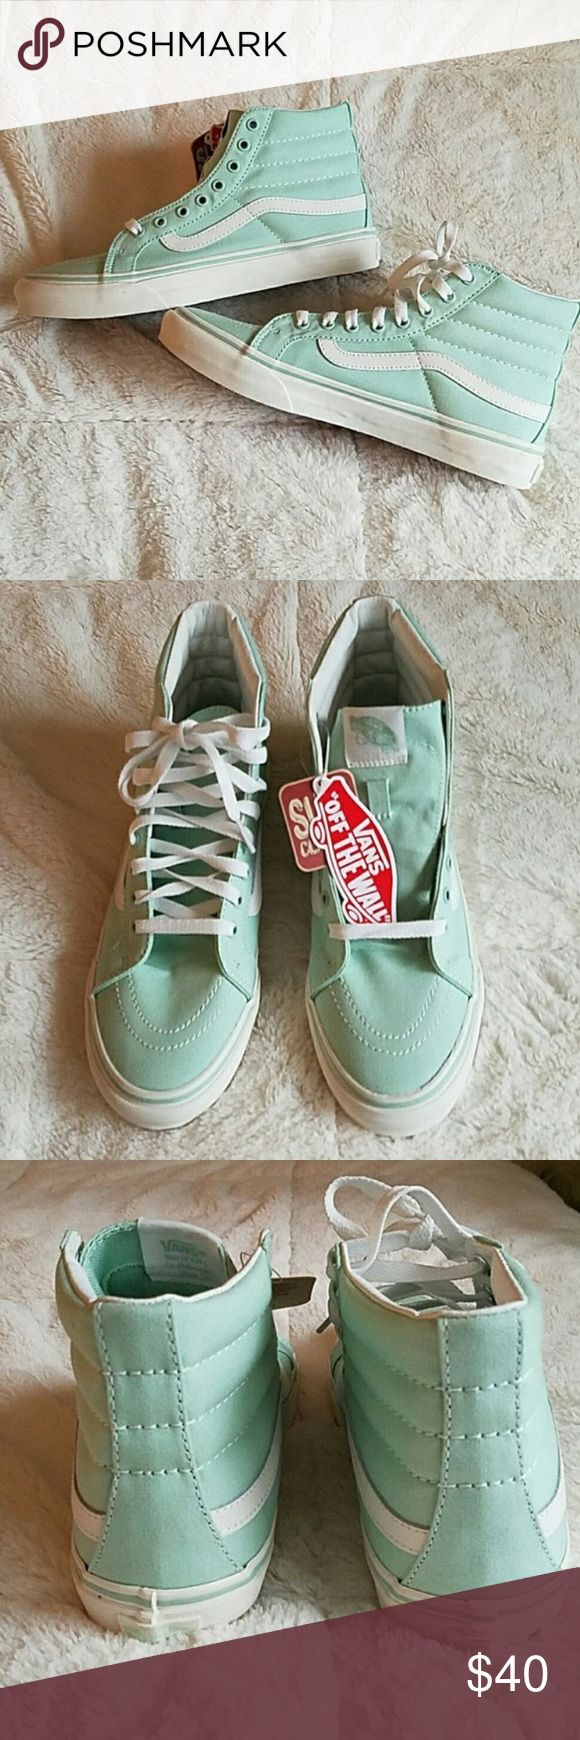 NEW Mint Vans NEW Mint Vans. New with tags. Never worn. These retail for $75 Vans Shoes Sneakers